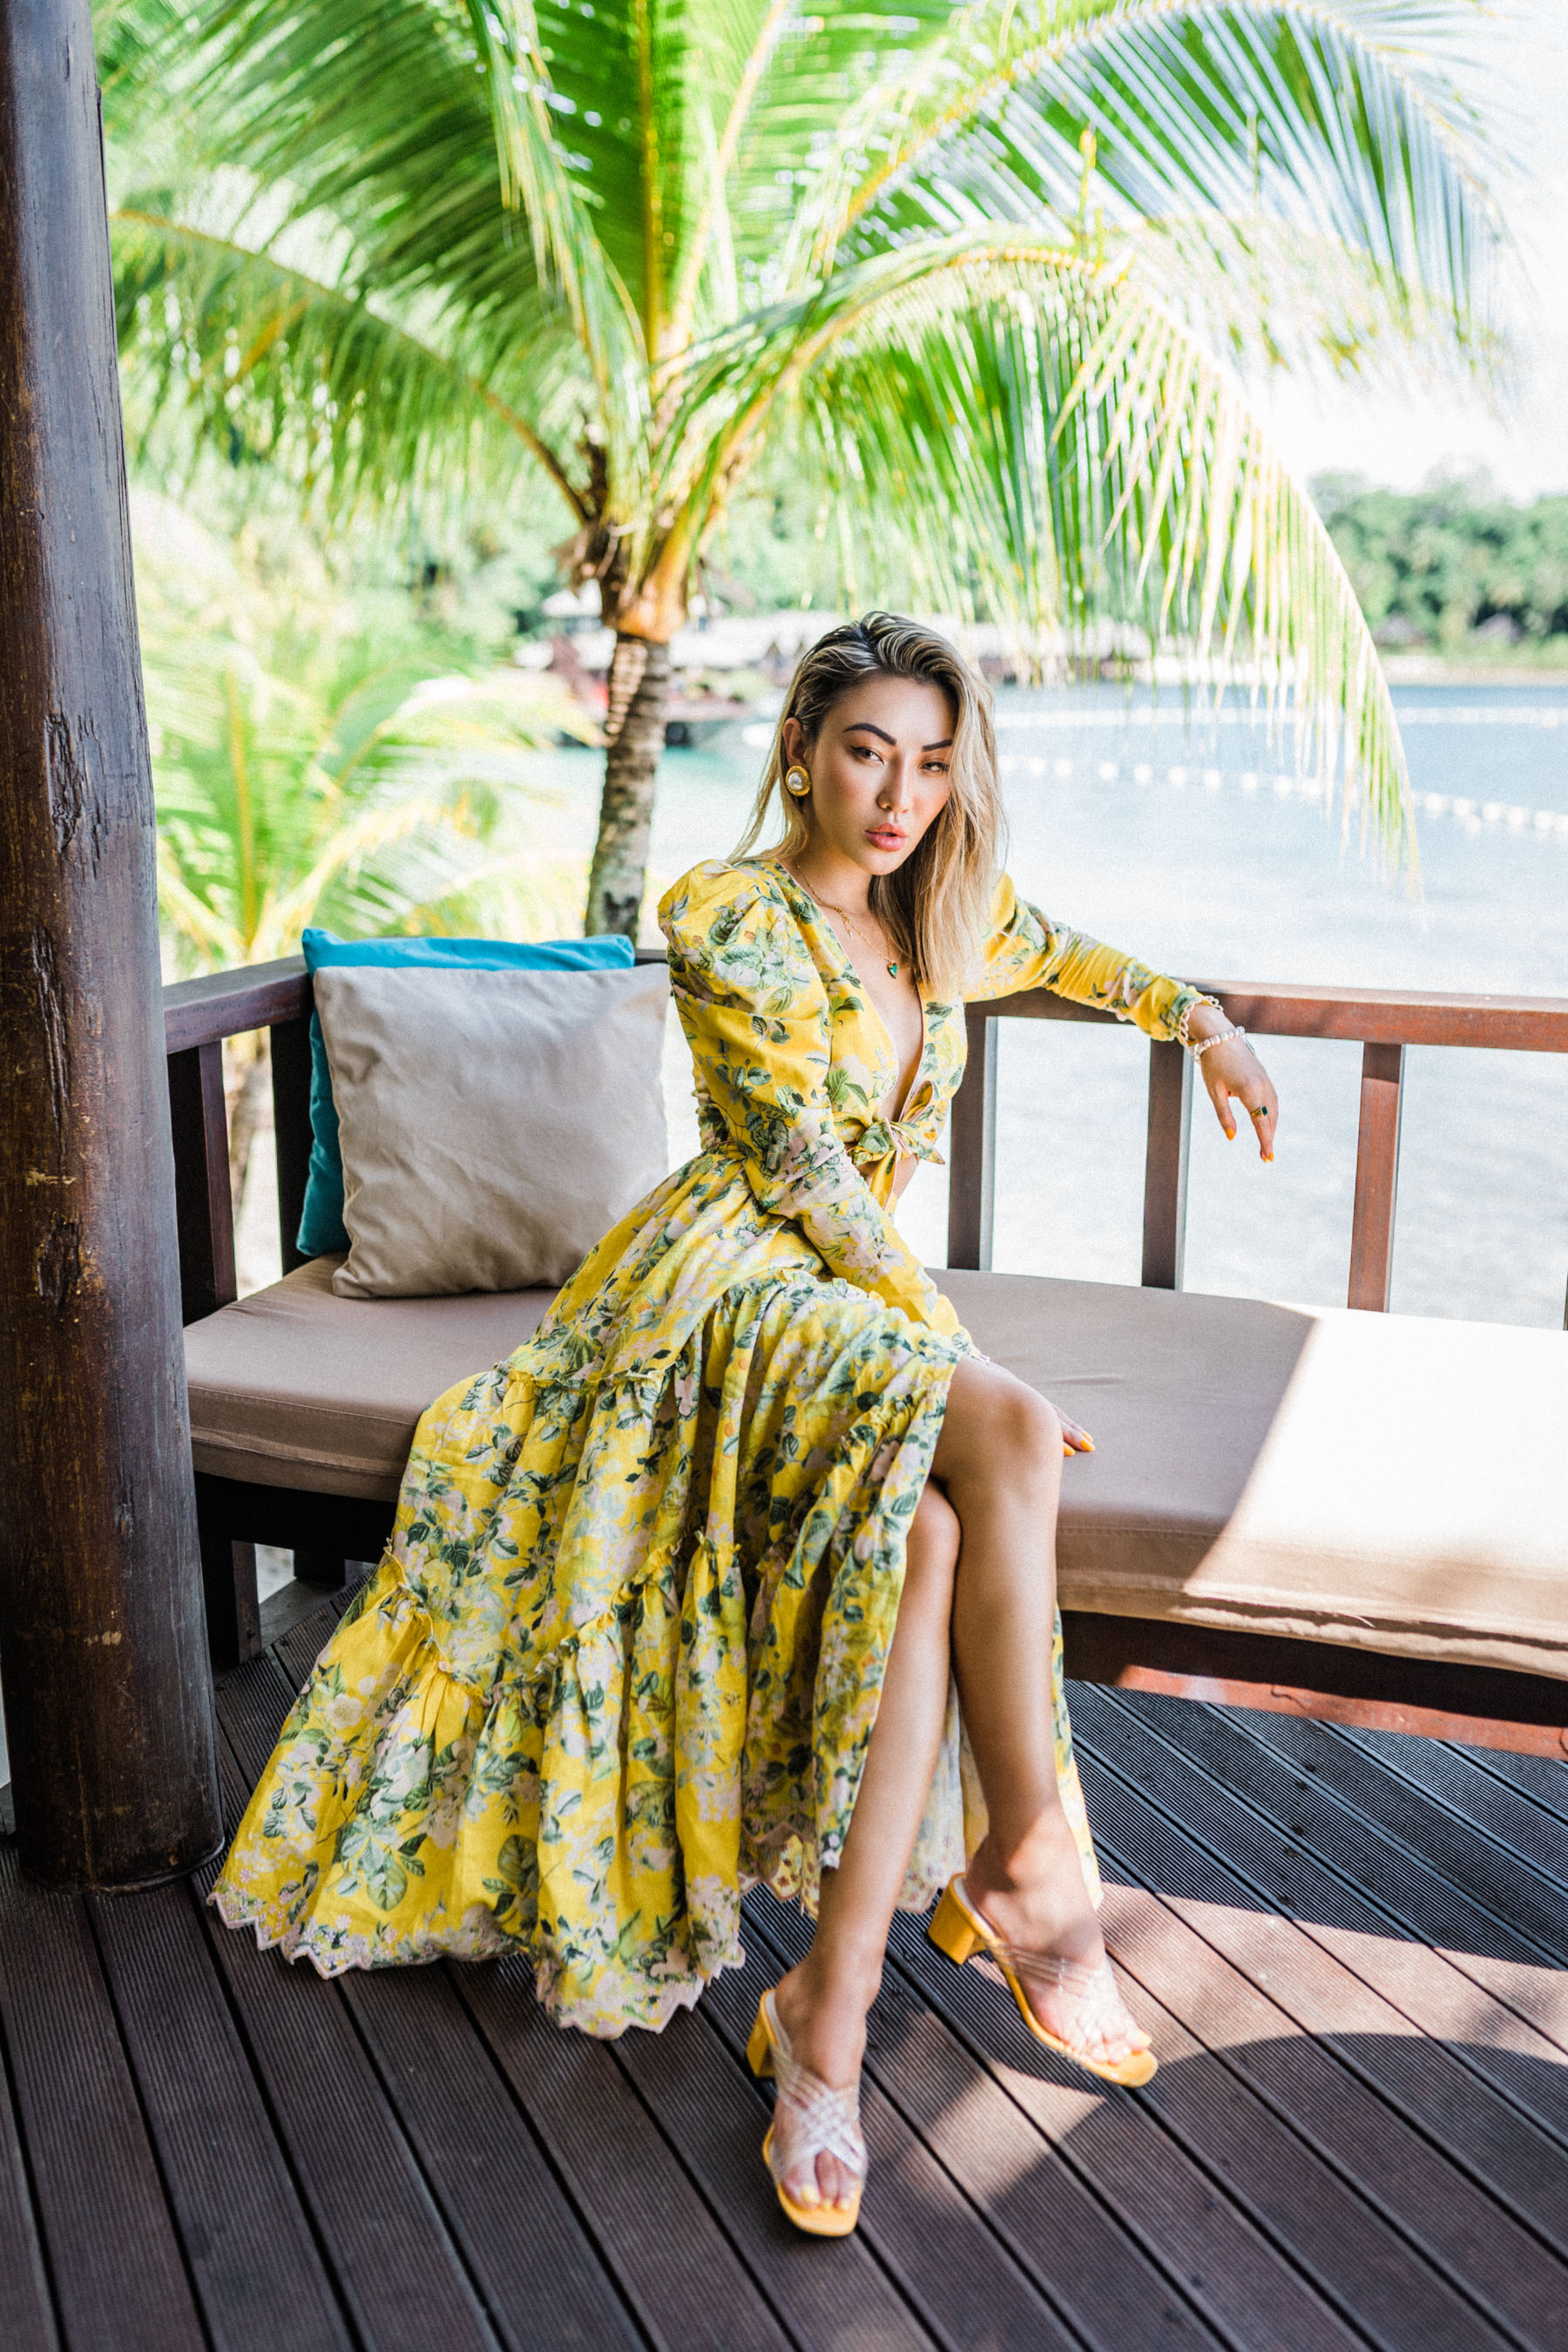 summer trends to retire, tropical dress, matching set, floral dress, clear pvc heels // Notjessfashion.com